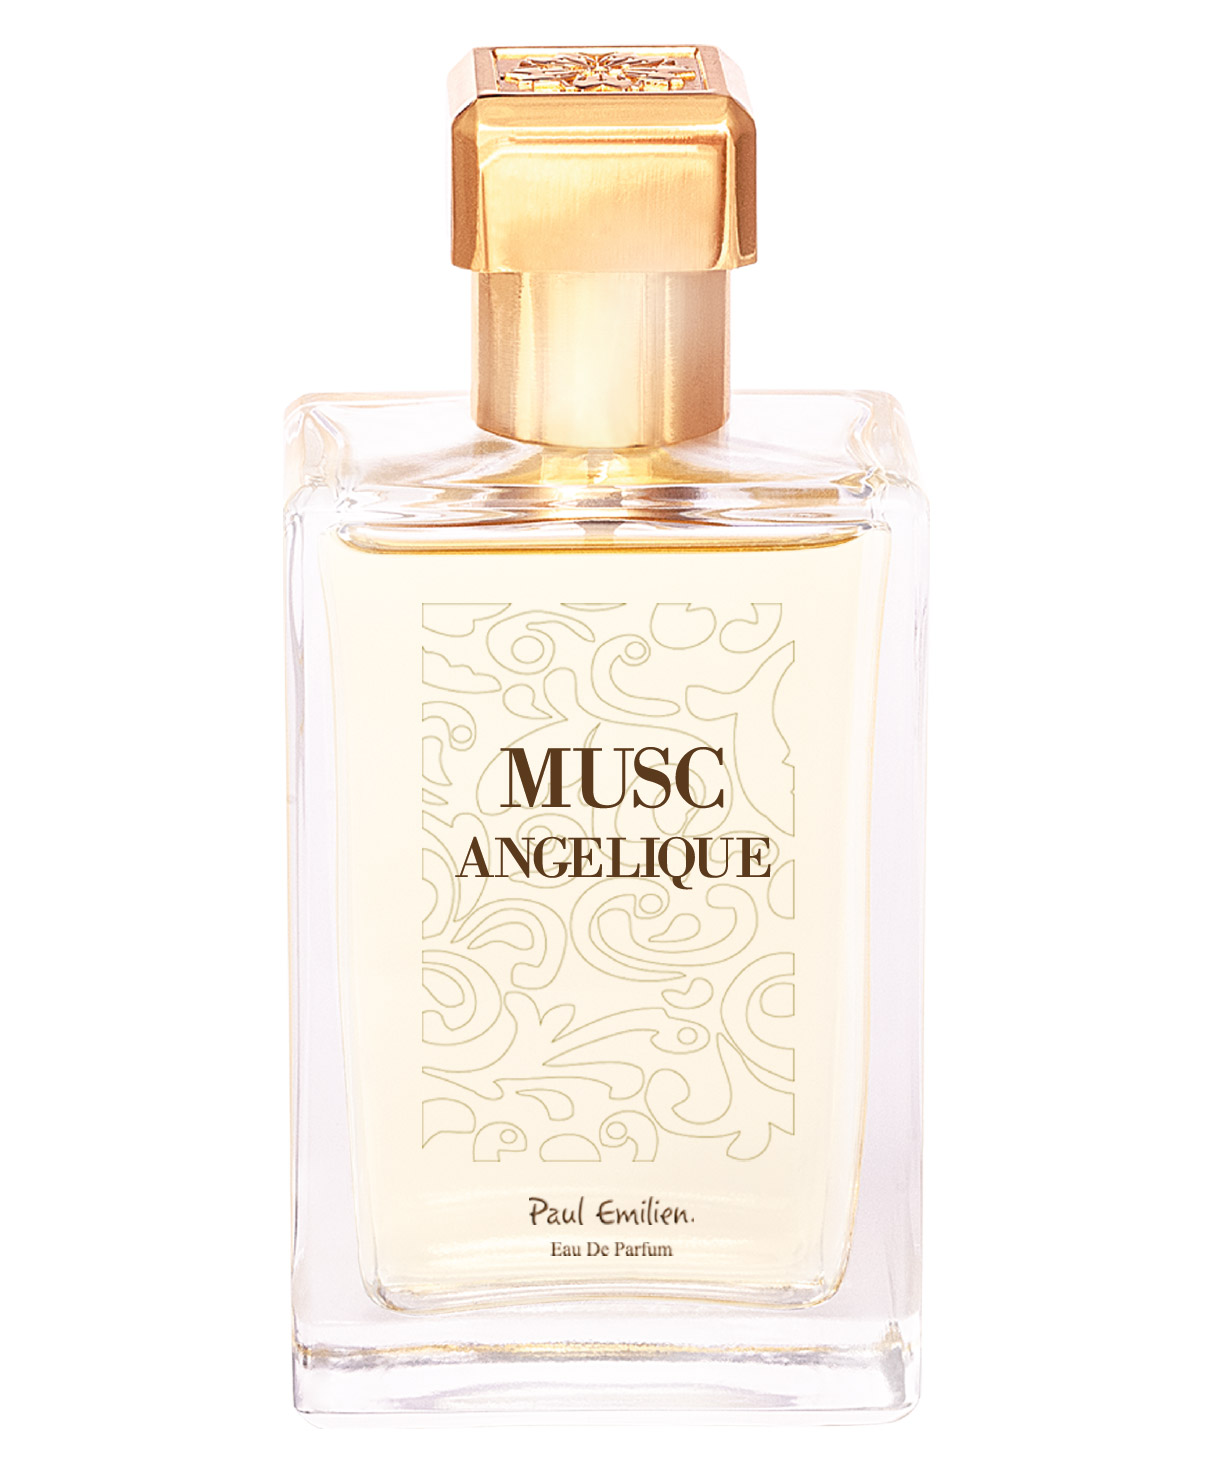 Paul Emilien Musc Angelique Review Fragrance Reviews